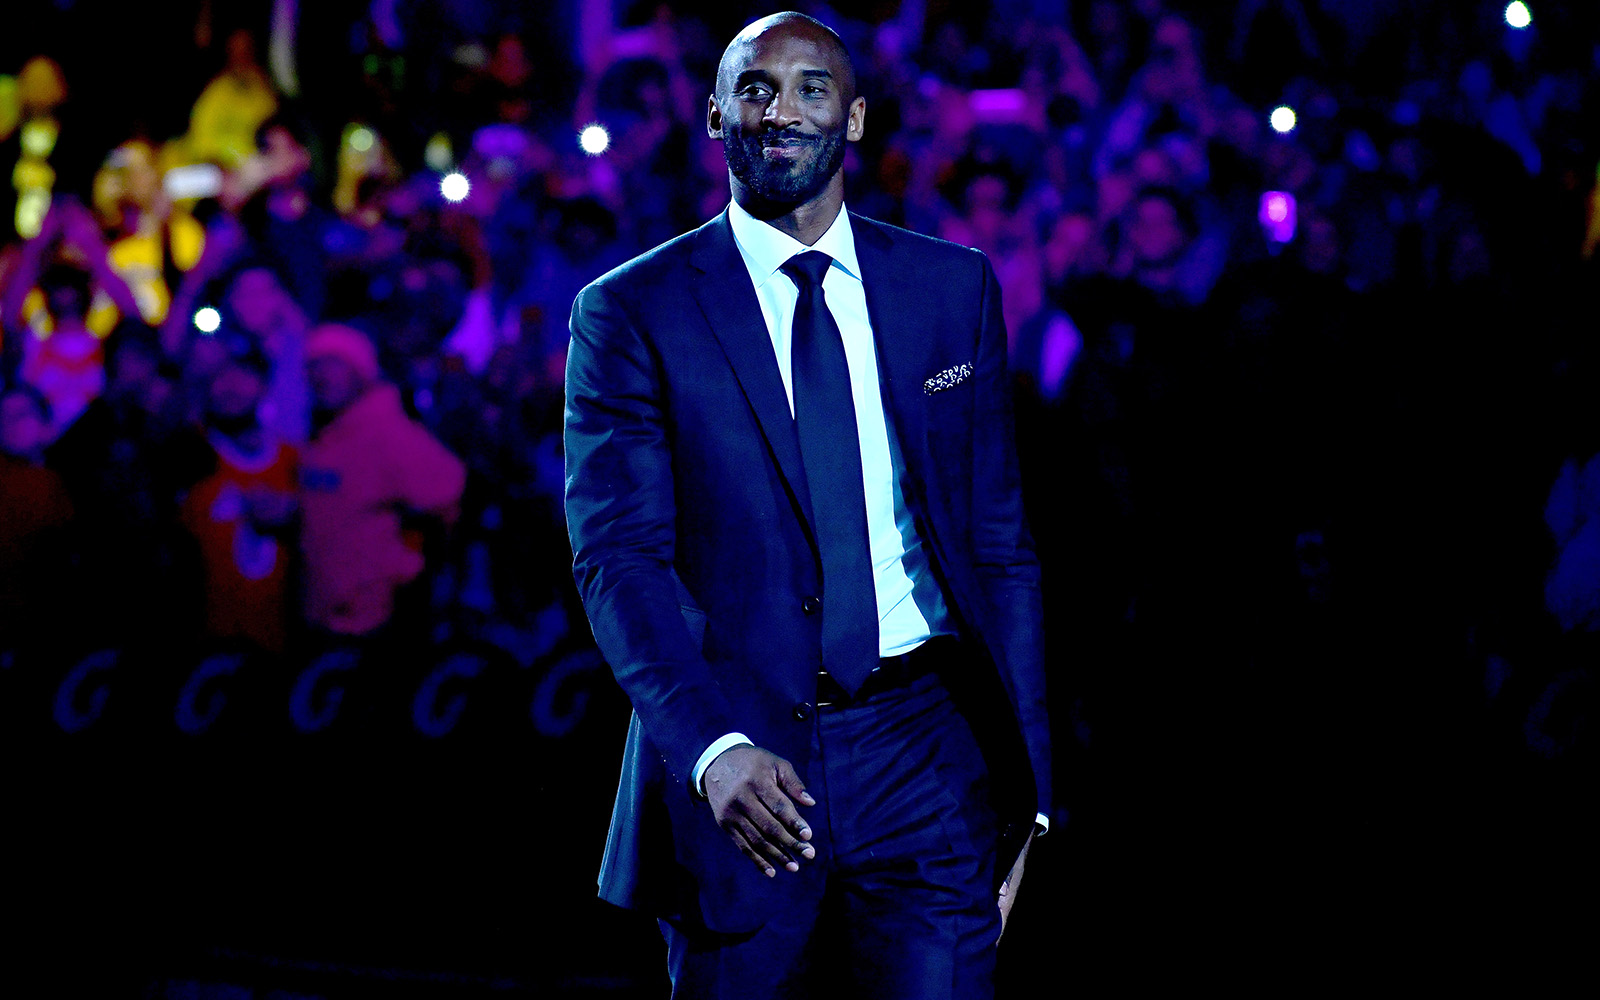 Warriors to be 'out there' for Kobe ceremony